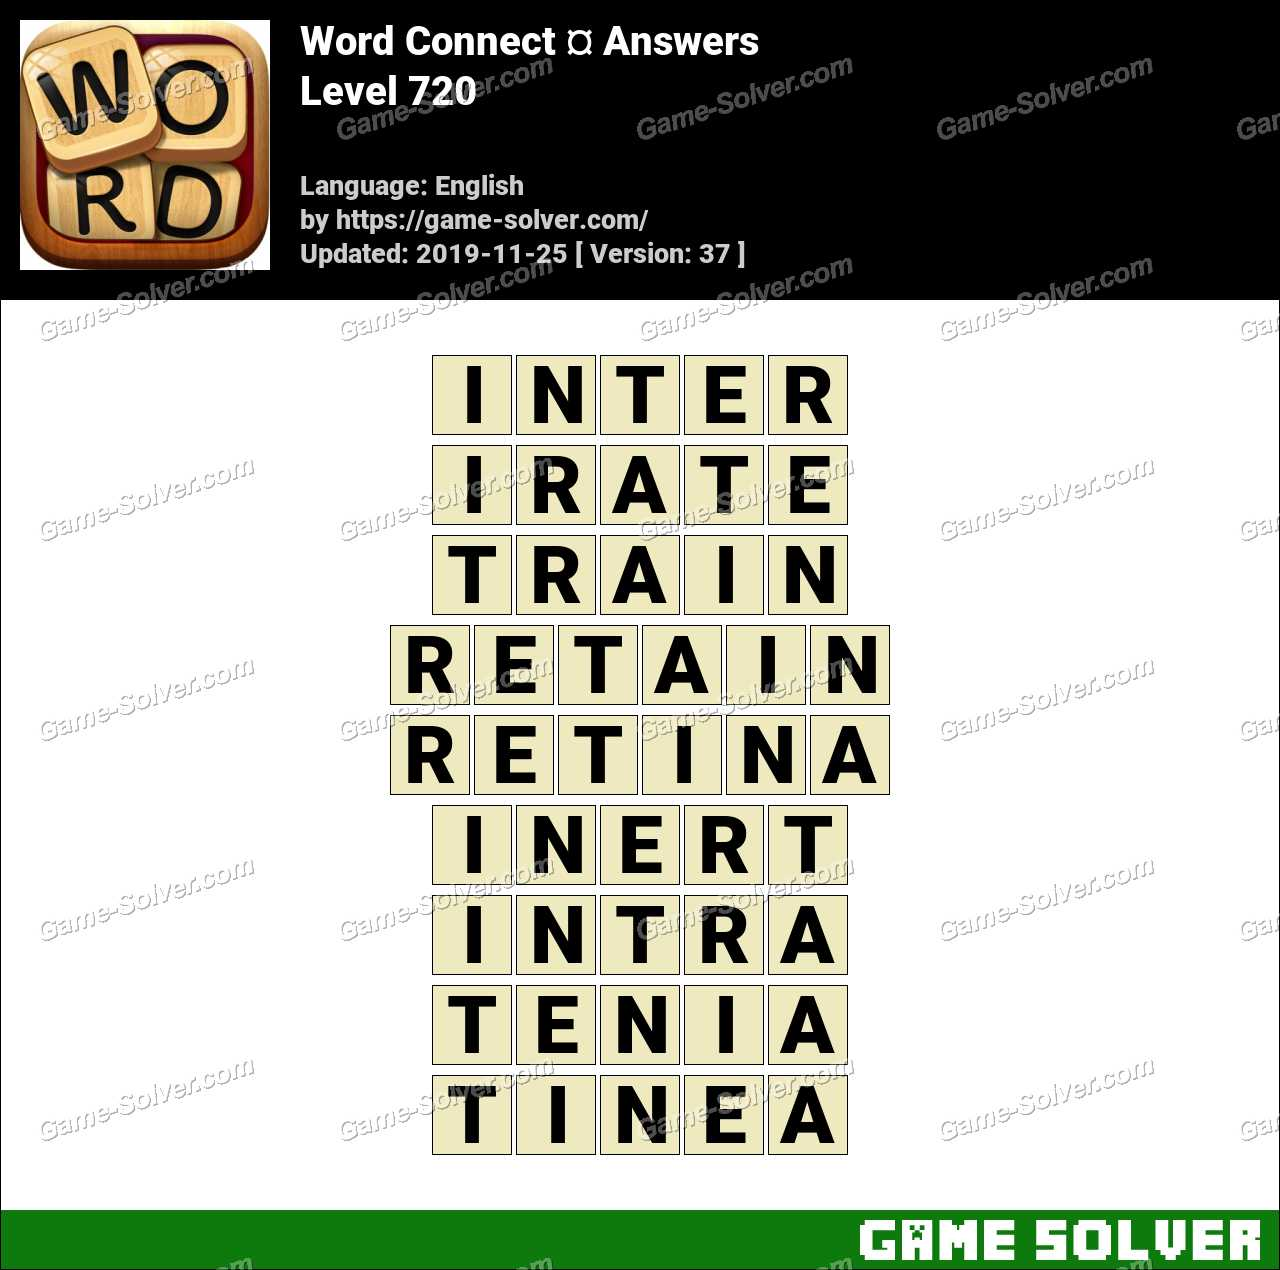 Word Connect Level 720 Answers